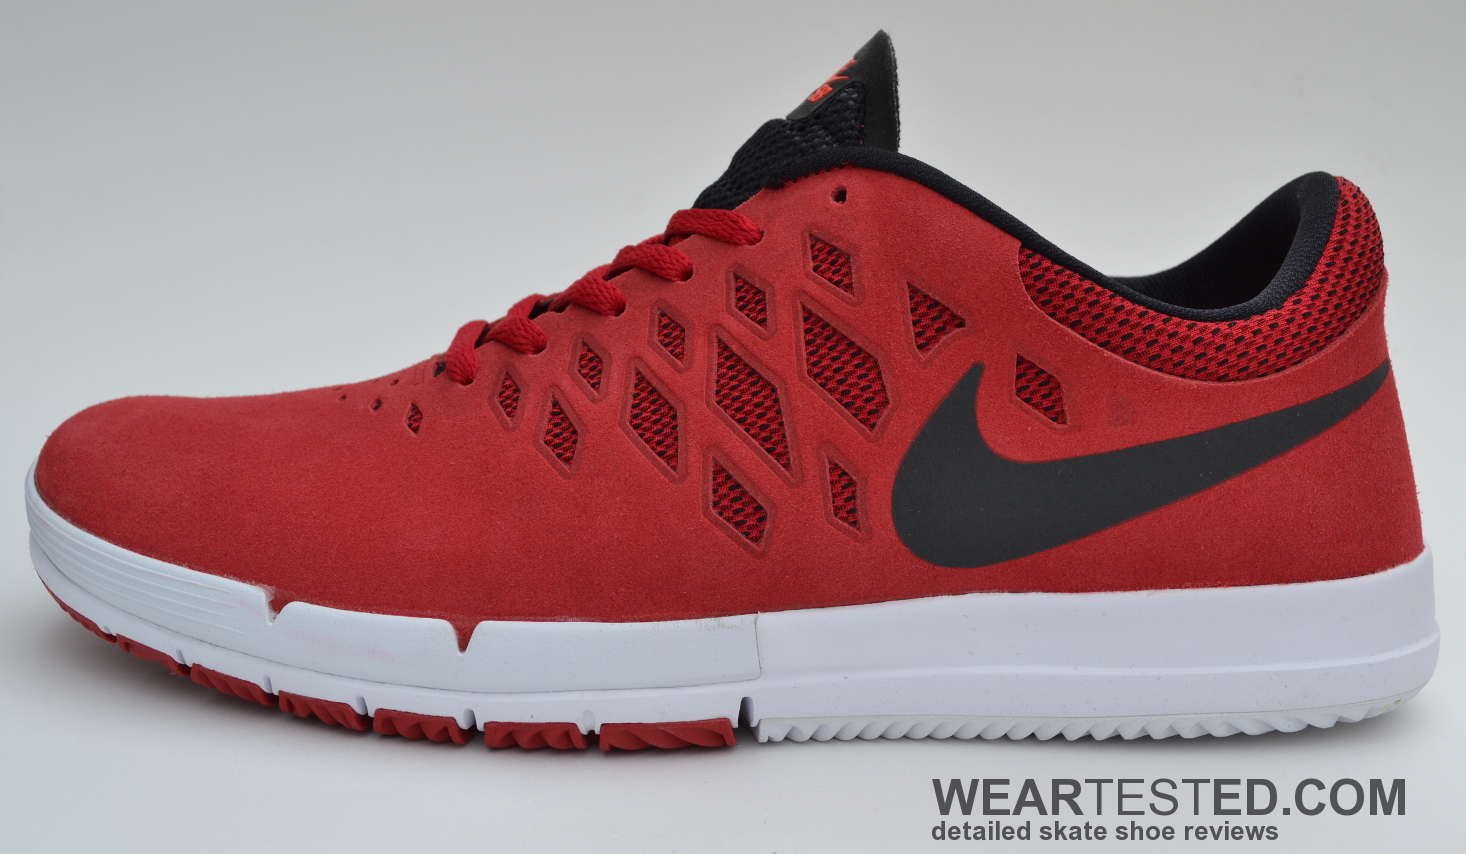 newest collection e6221 30682 Nike SB Free - Weartested - detailed skate shoe reviews